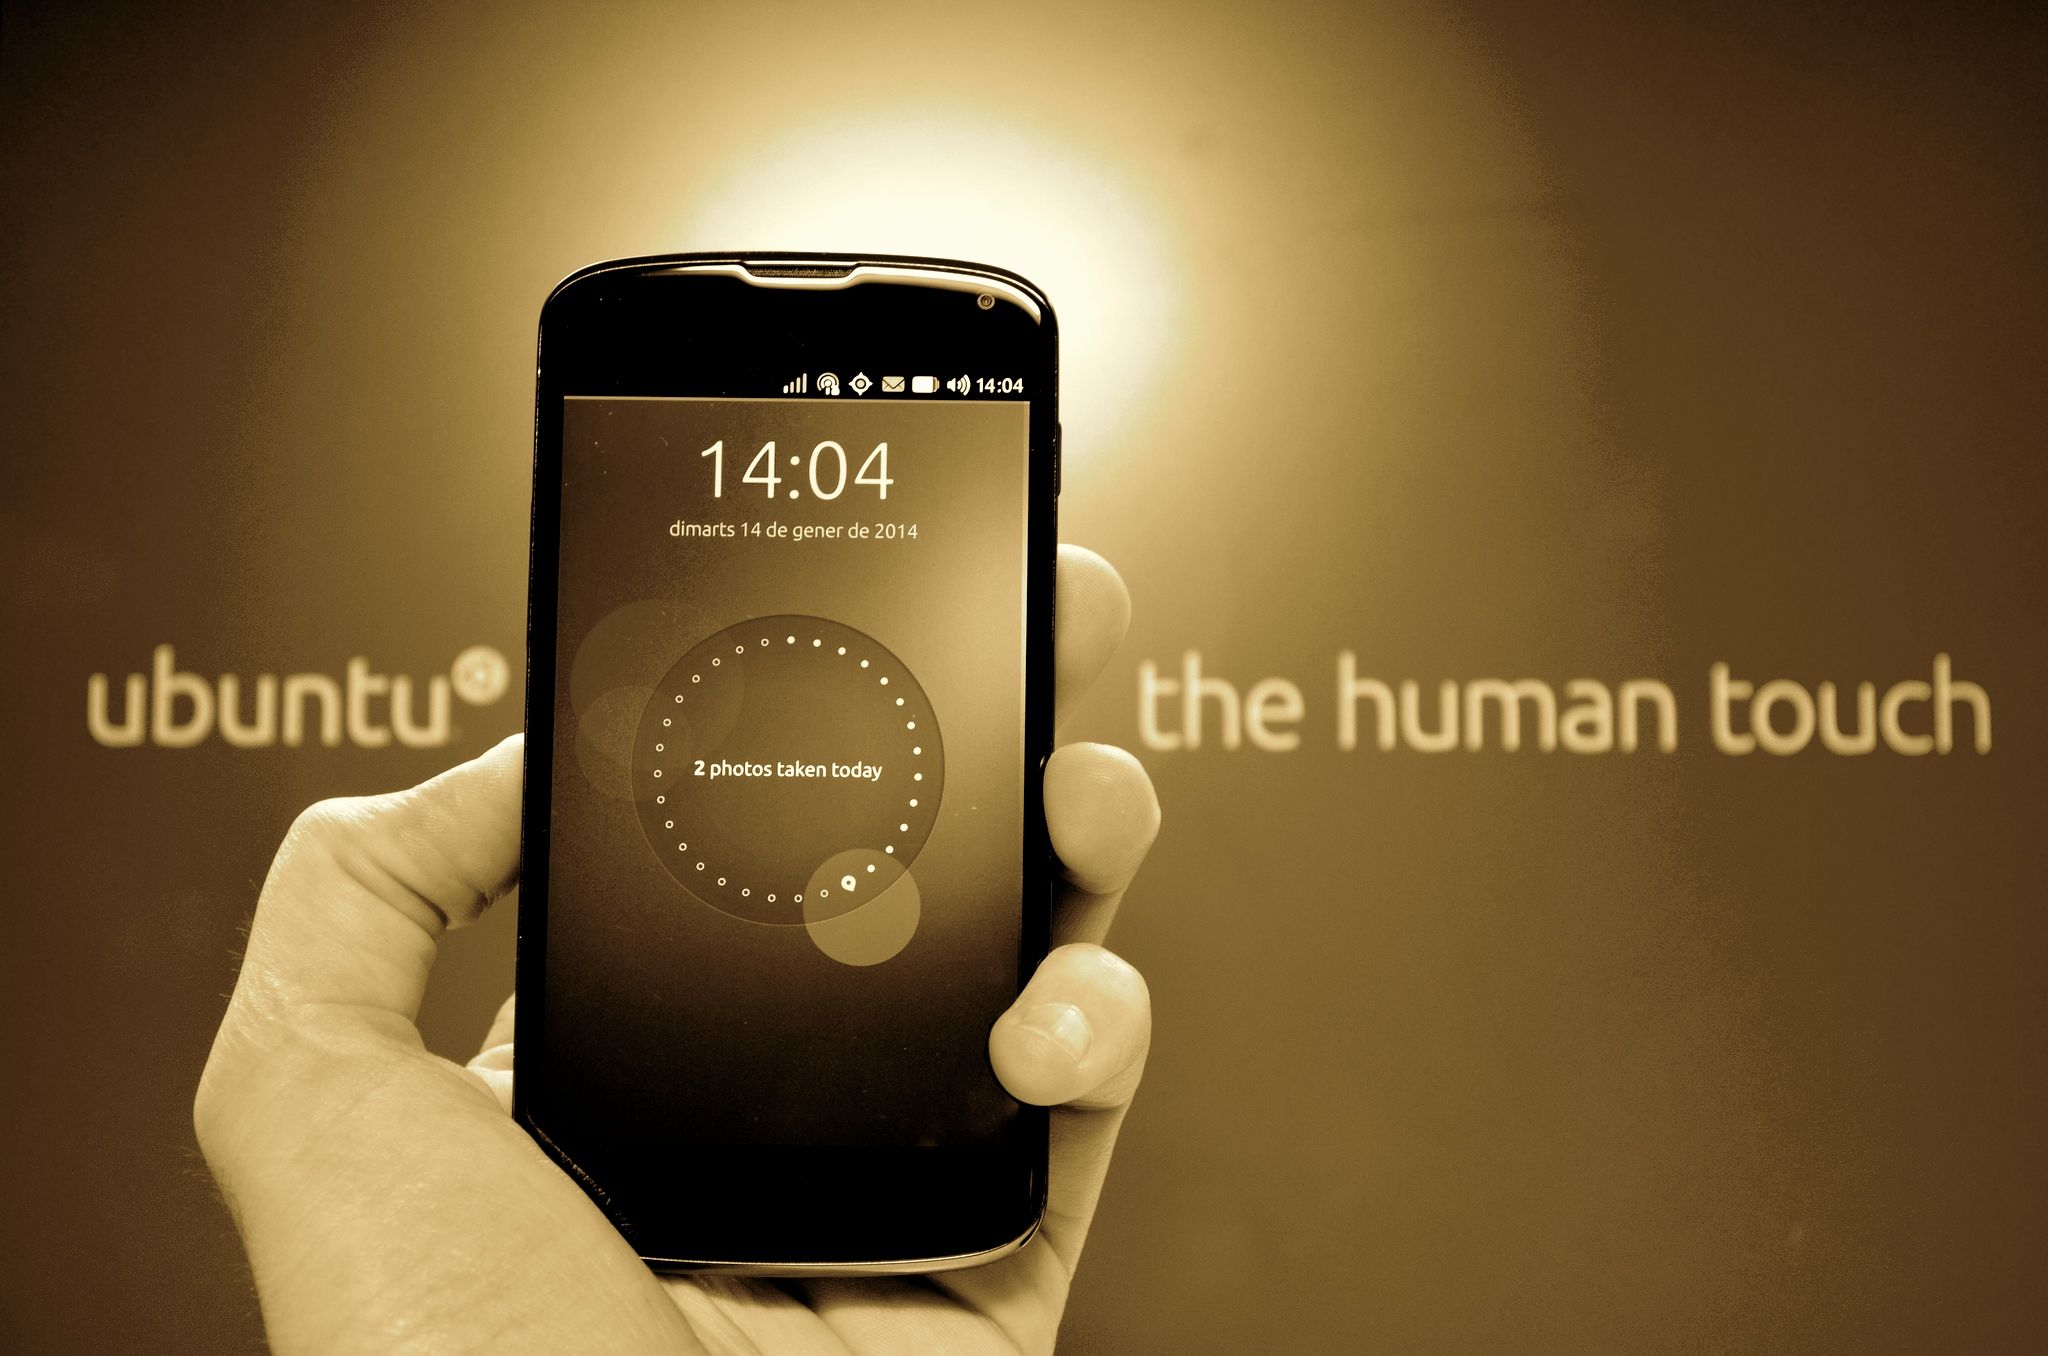 Can we have an open phone please? The case of the Ubuntu Phone